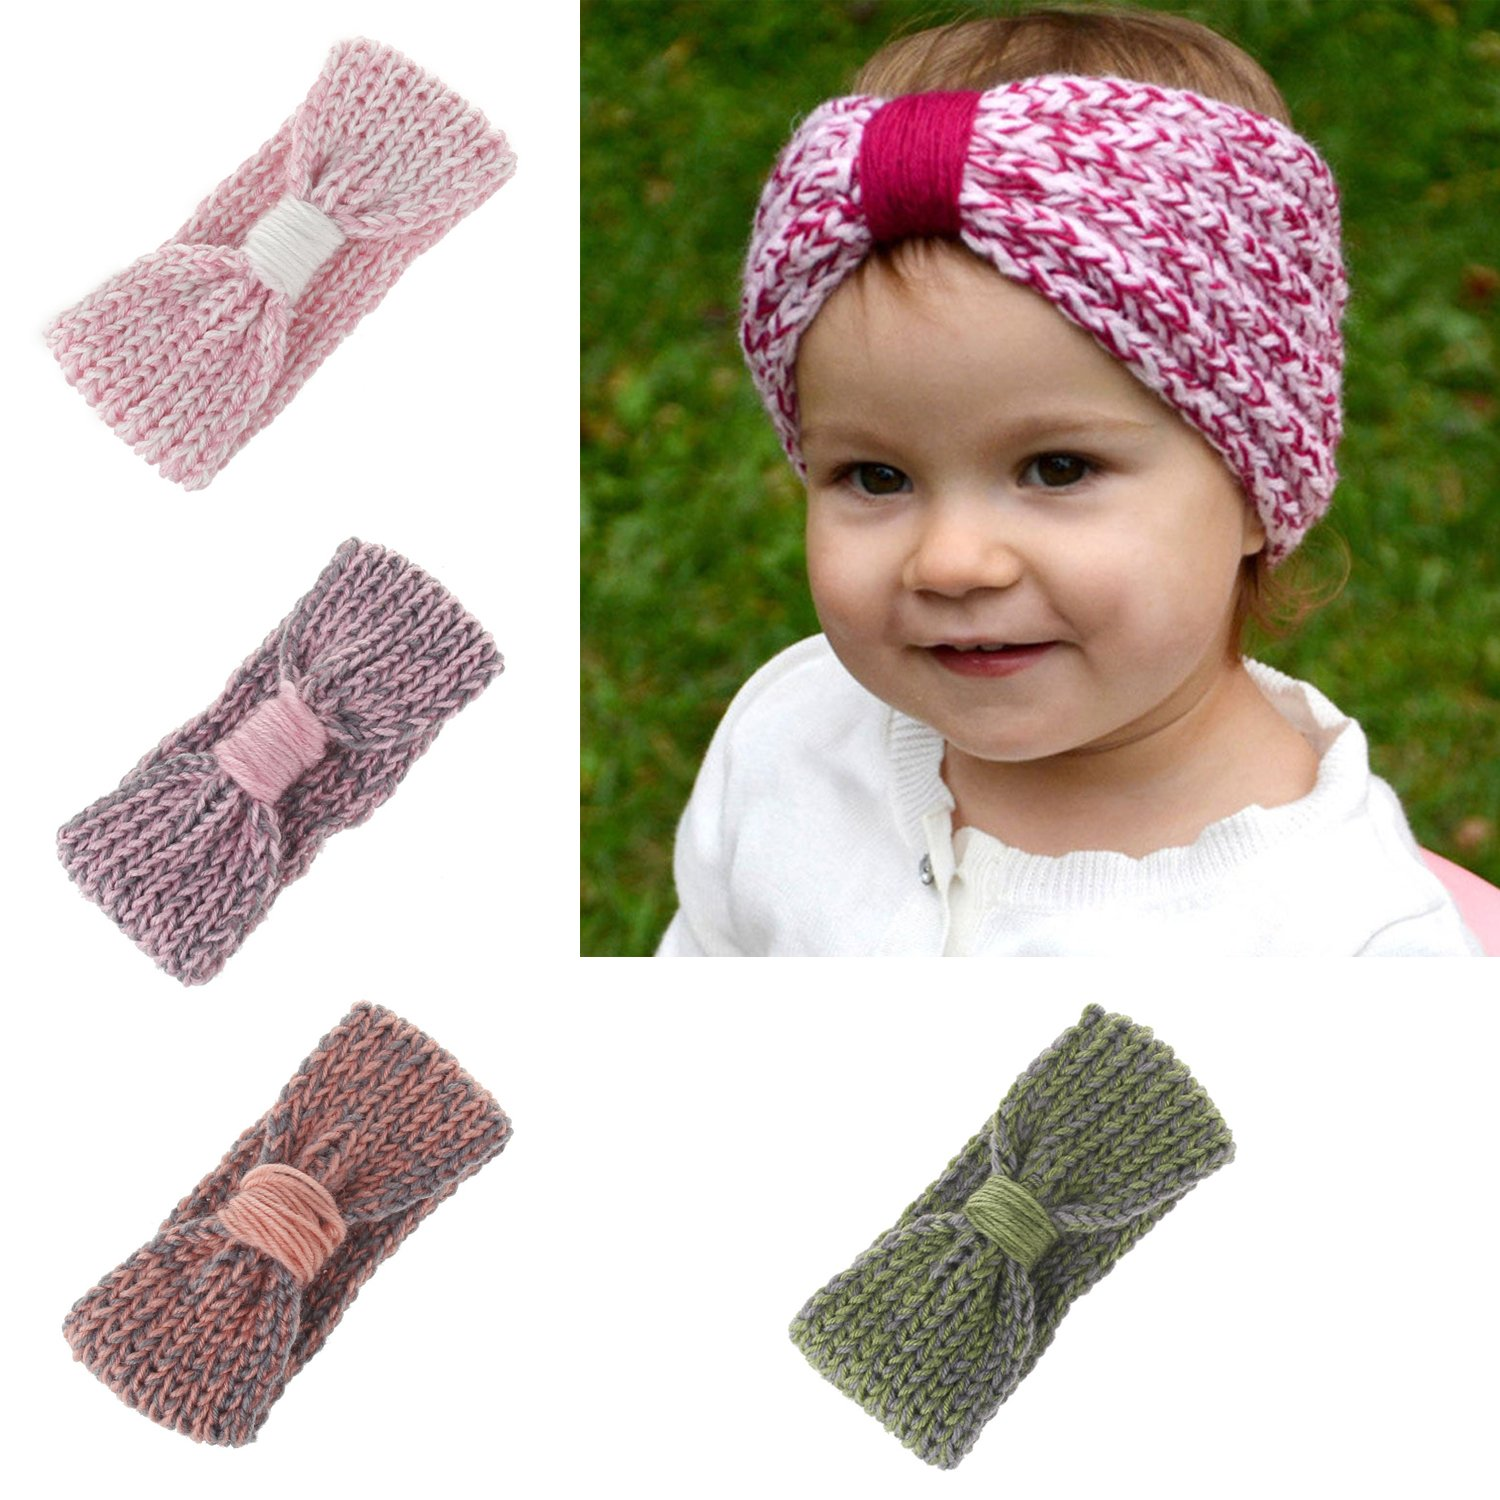 Amazon.com  Baby Toddler Little Girl Winter Cute Bowknot Crochet Knit  Headband Hairband Ear Warmer (4 Colors Pack - B)  Clothing ac22fdefceb